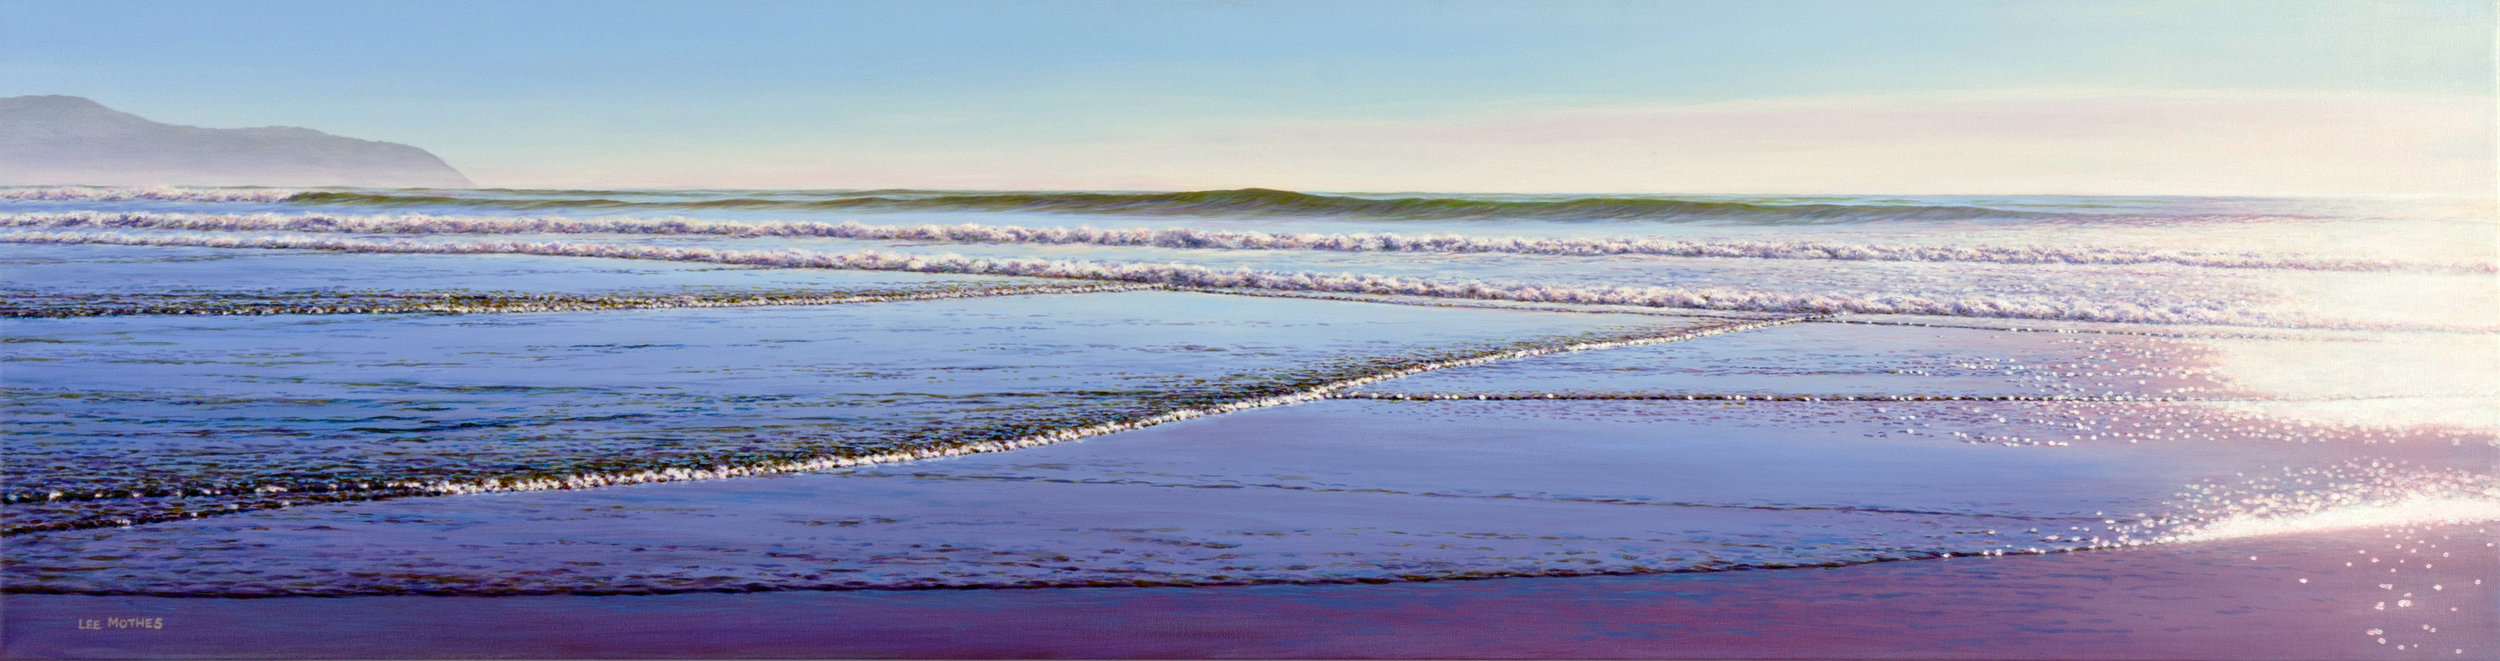 "Long Surf 9 - Afternoon Low Tide, 16"" by 60"" acrylic on canvas  (available)"